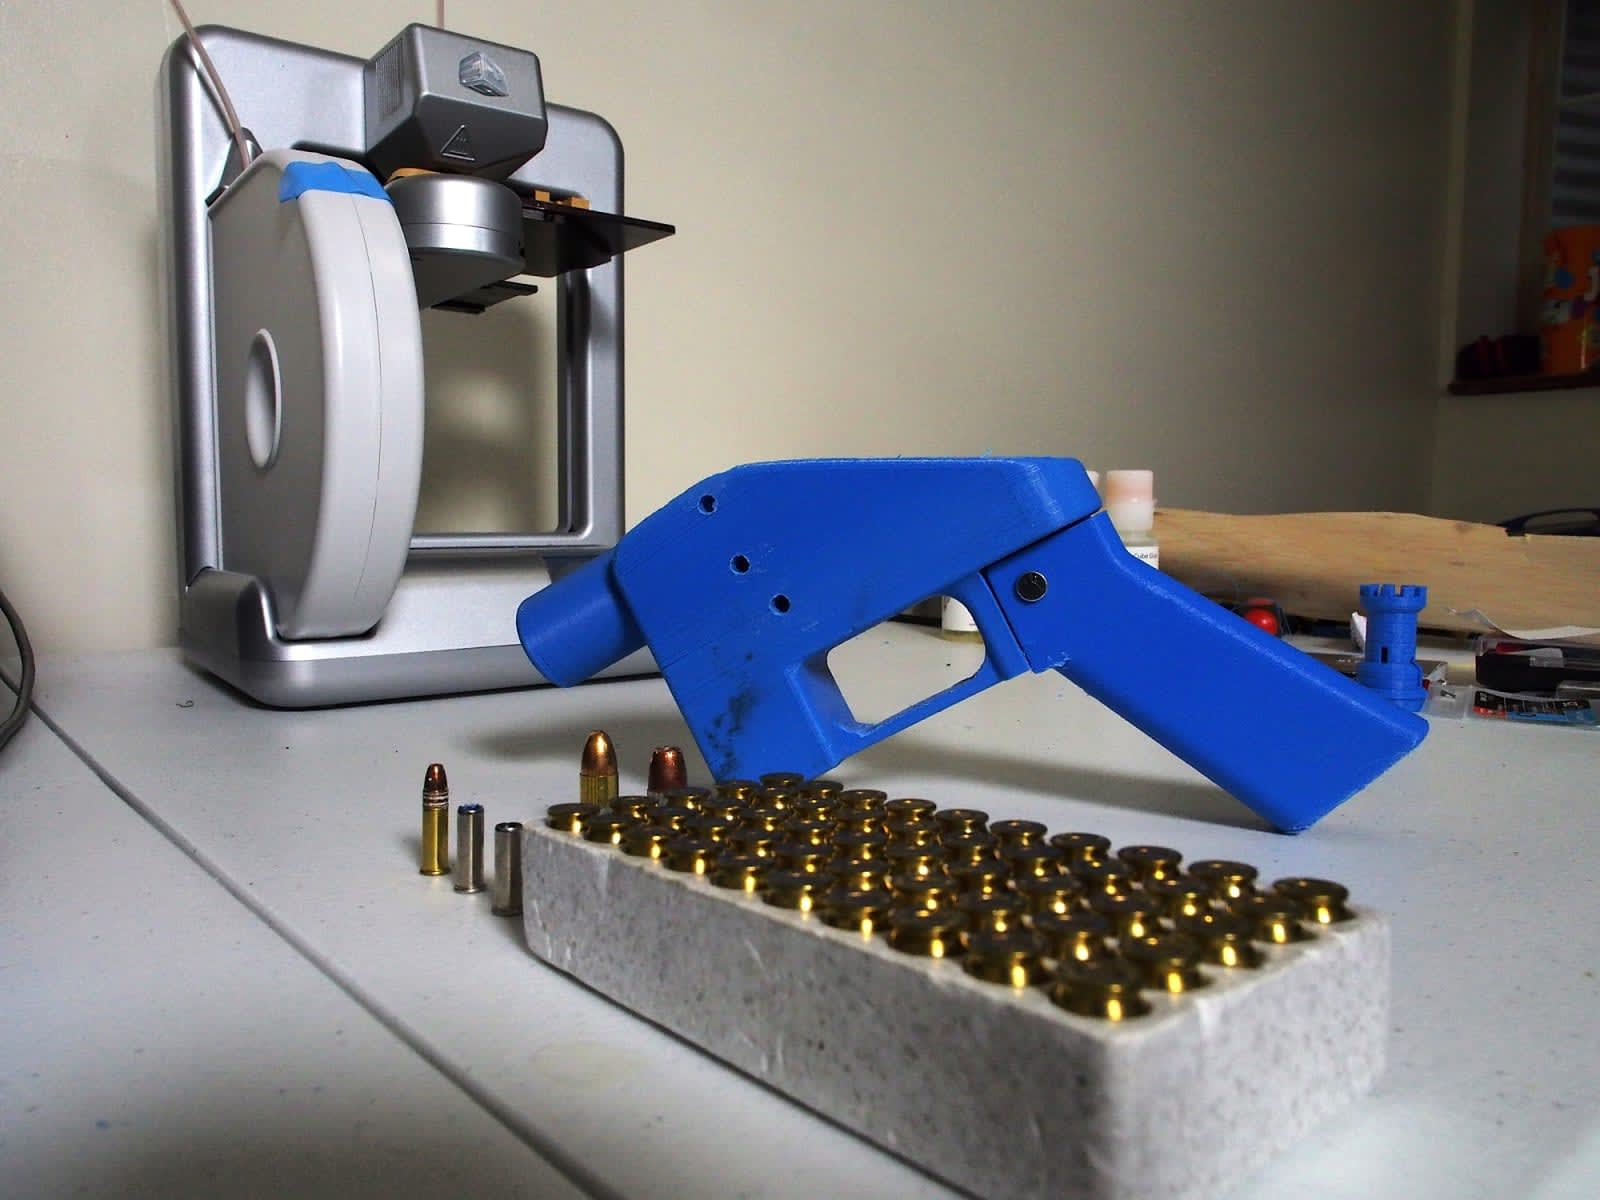 Judge extends ban on publication of 3D-printed gun designs